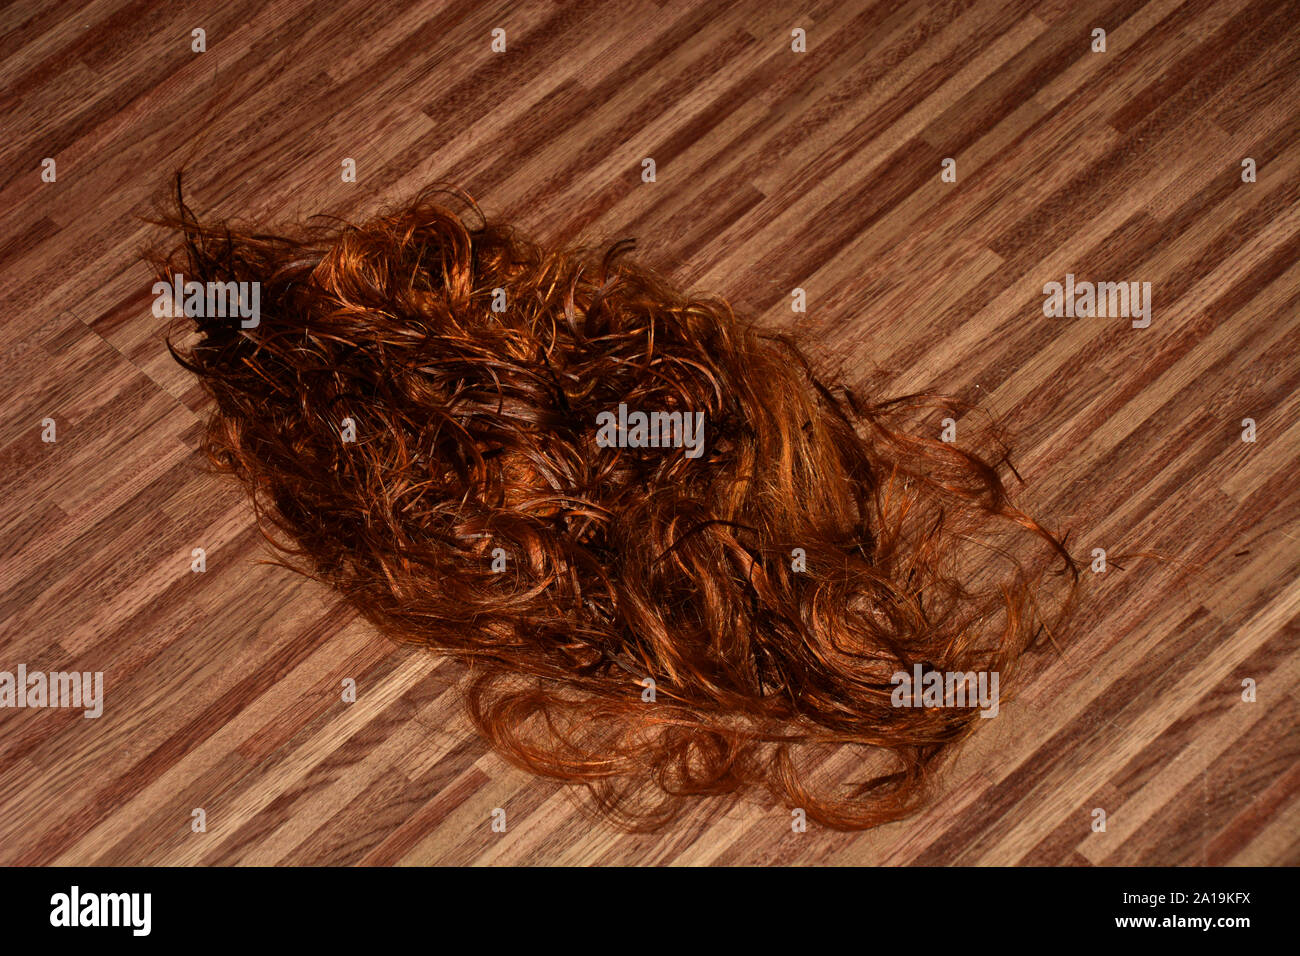 https www alamy com cut long red hair on the floor in a hairdressing salon red cutted hair in a beauty salon image327824558 html